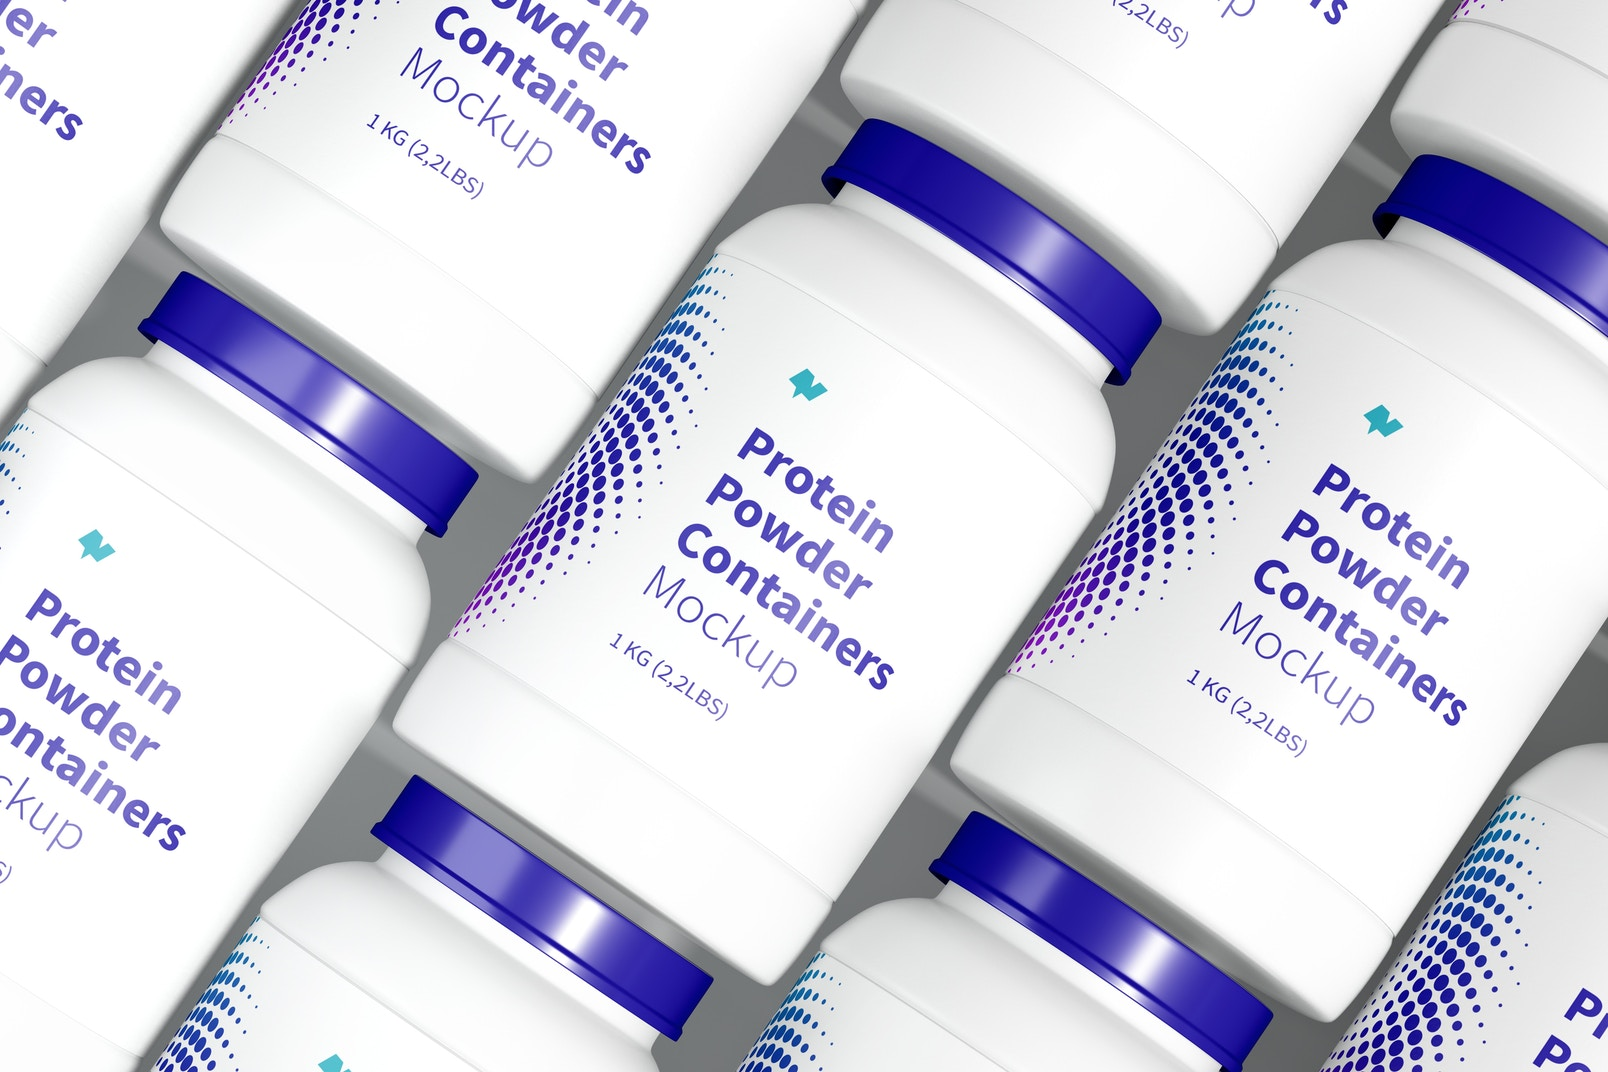 Protein Powder Container Set Mockup